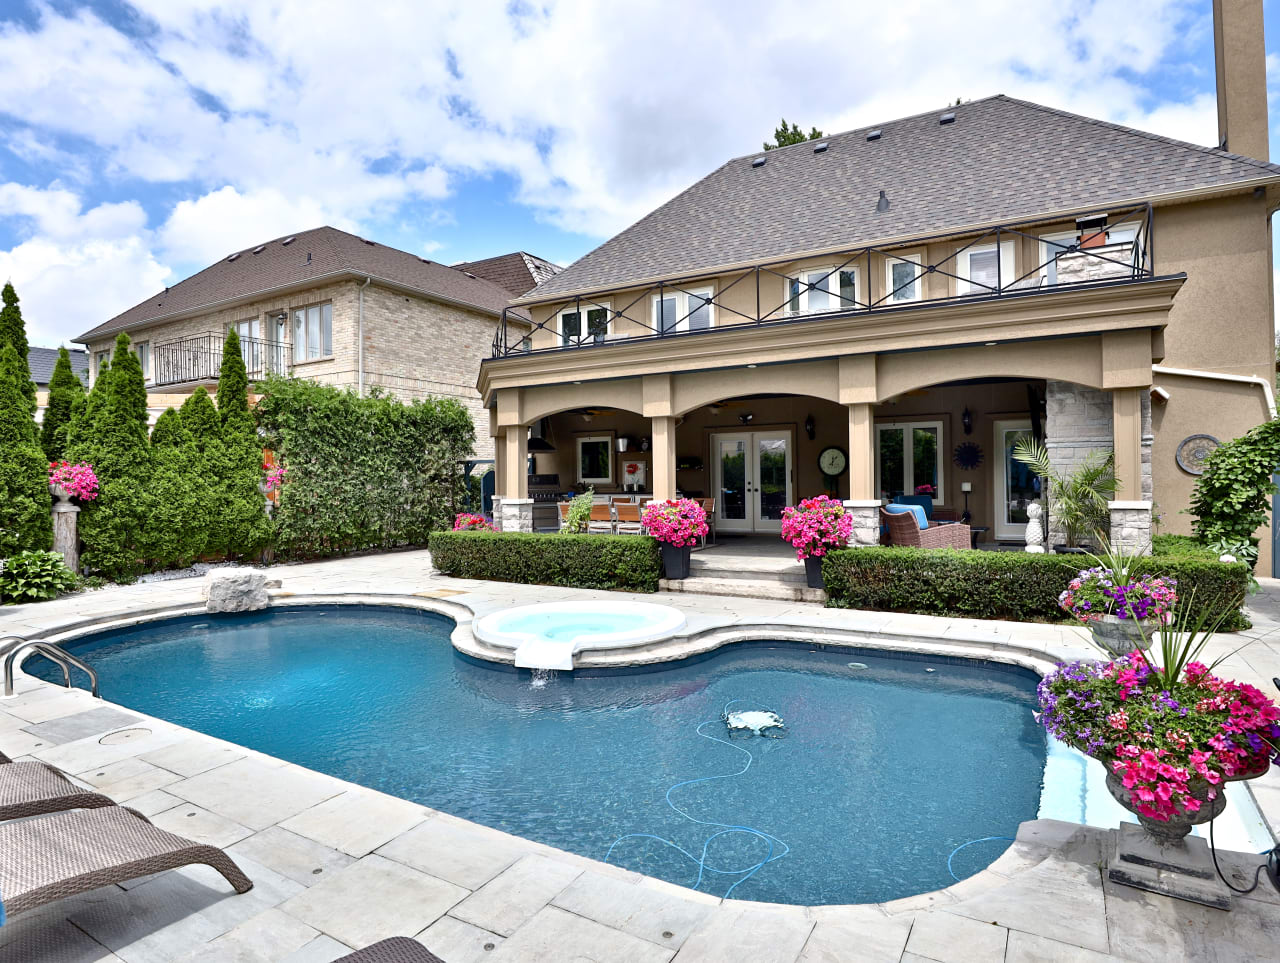 Sold: Unrivaled French Country Inspired Masterpiece